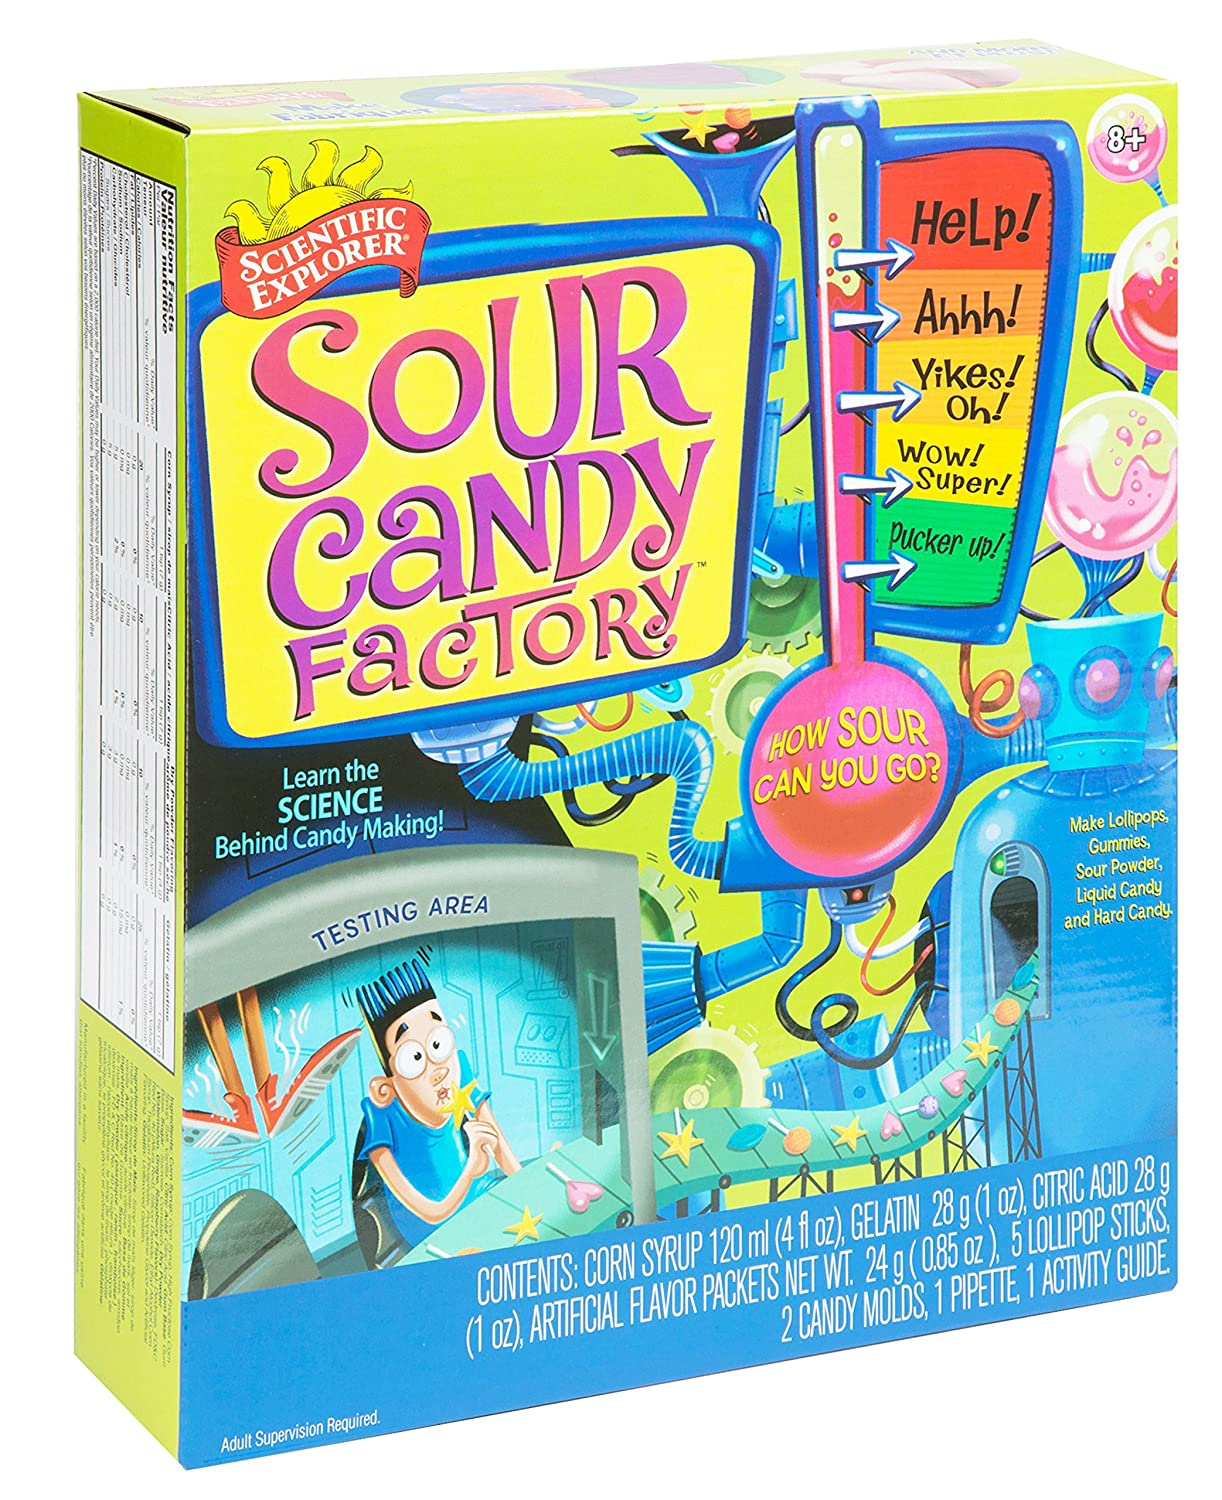 mold hard Adult candy